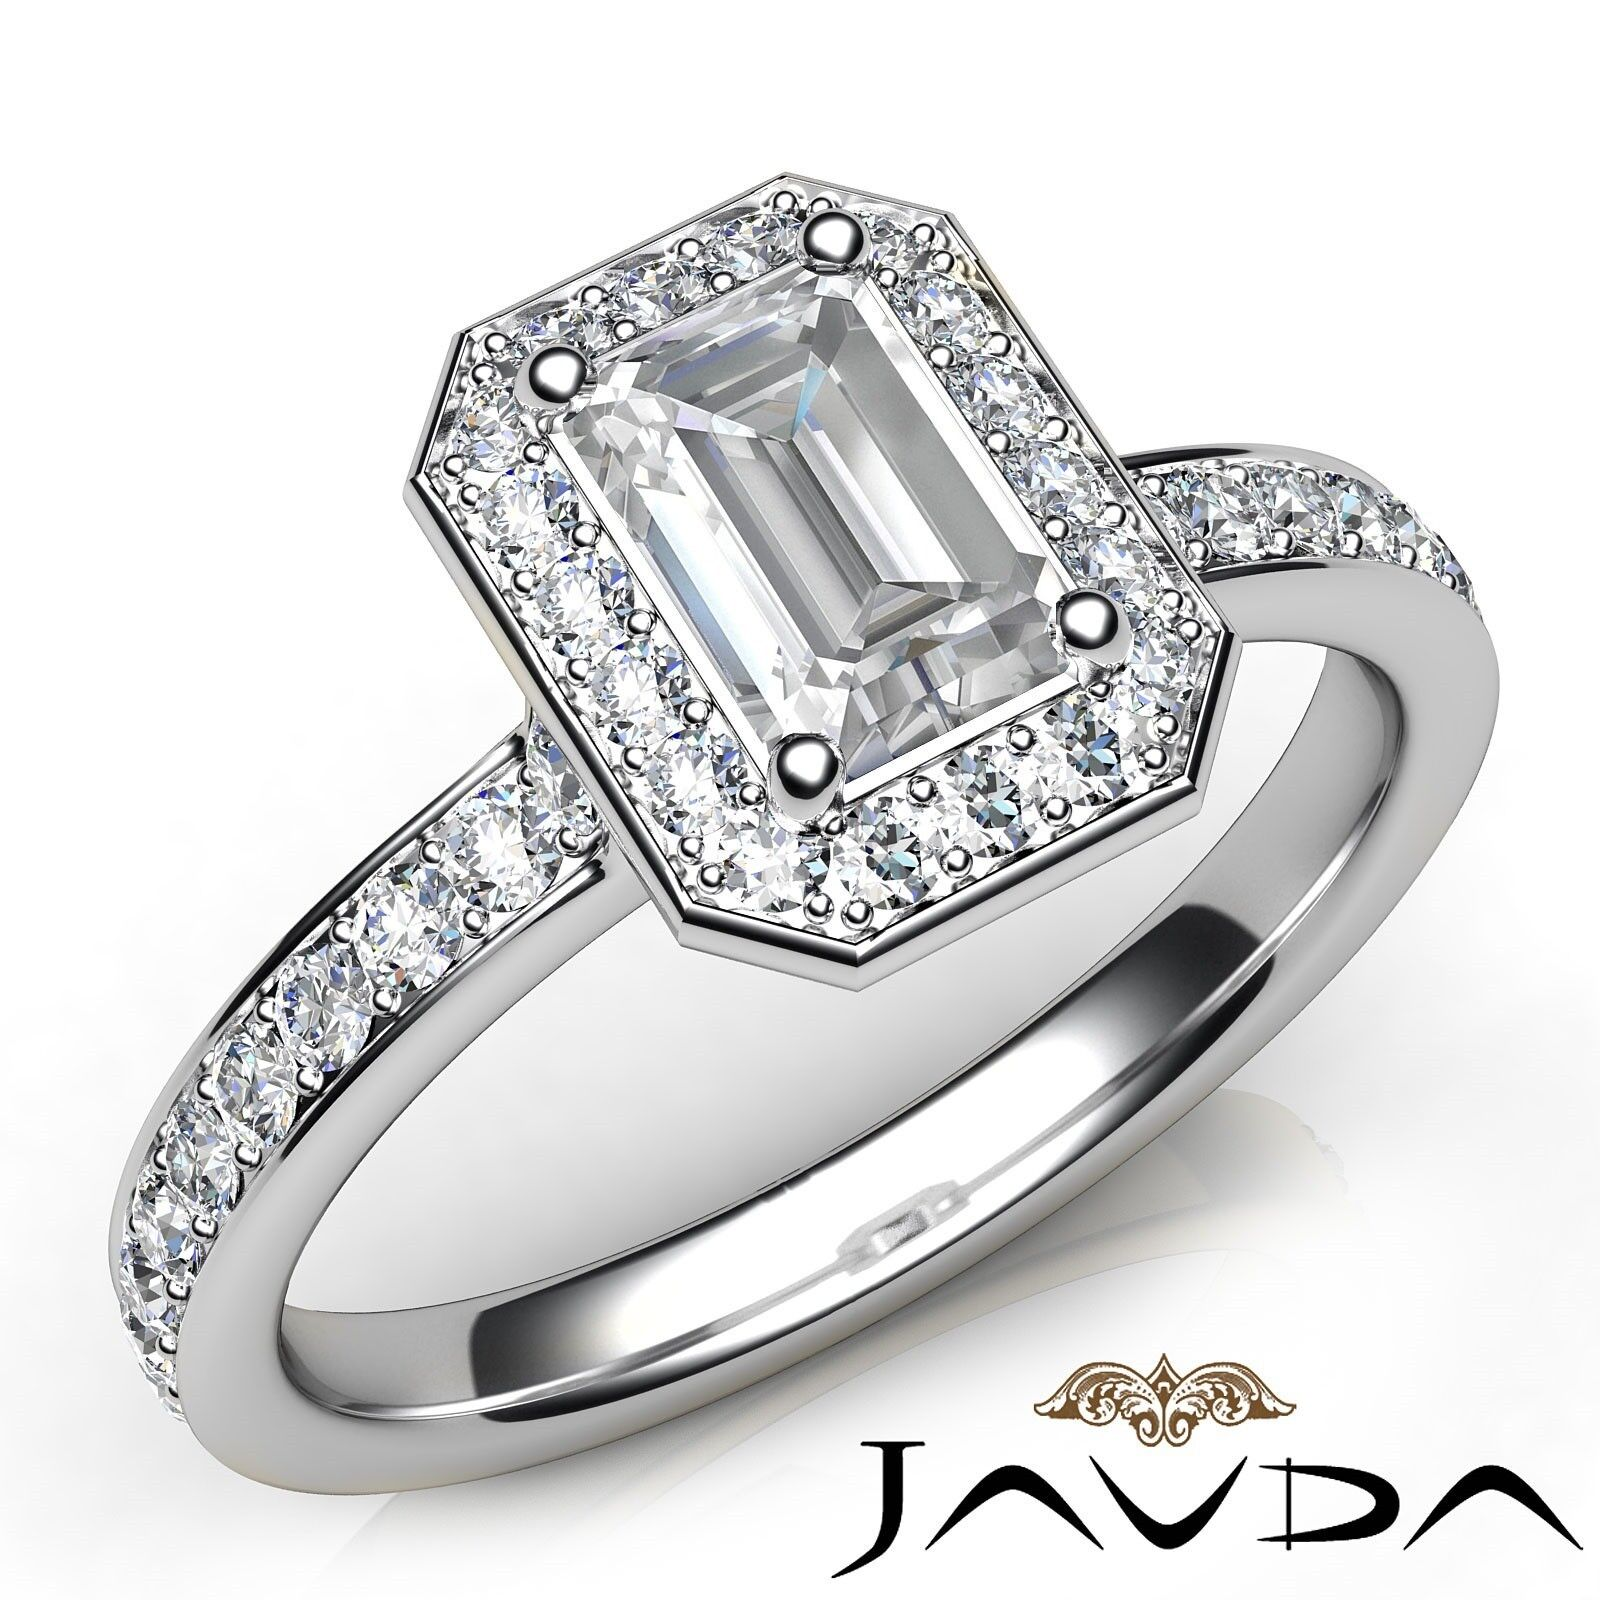 1.65Ctw Halo Pave Set Emerald Diamond Engagement Her Ring GIA F-VVS2 White Gold